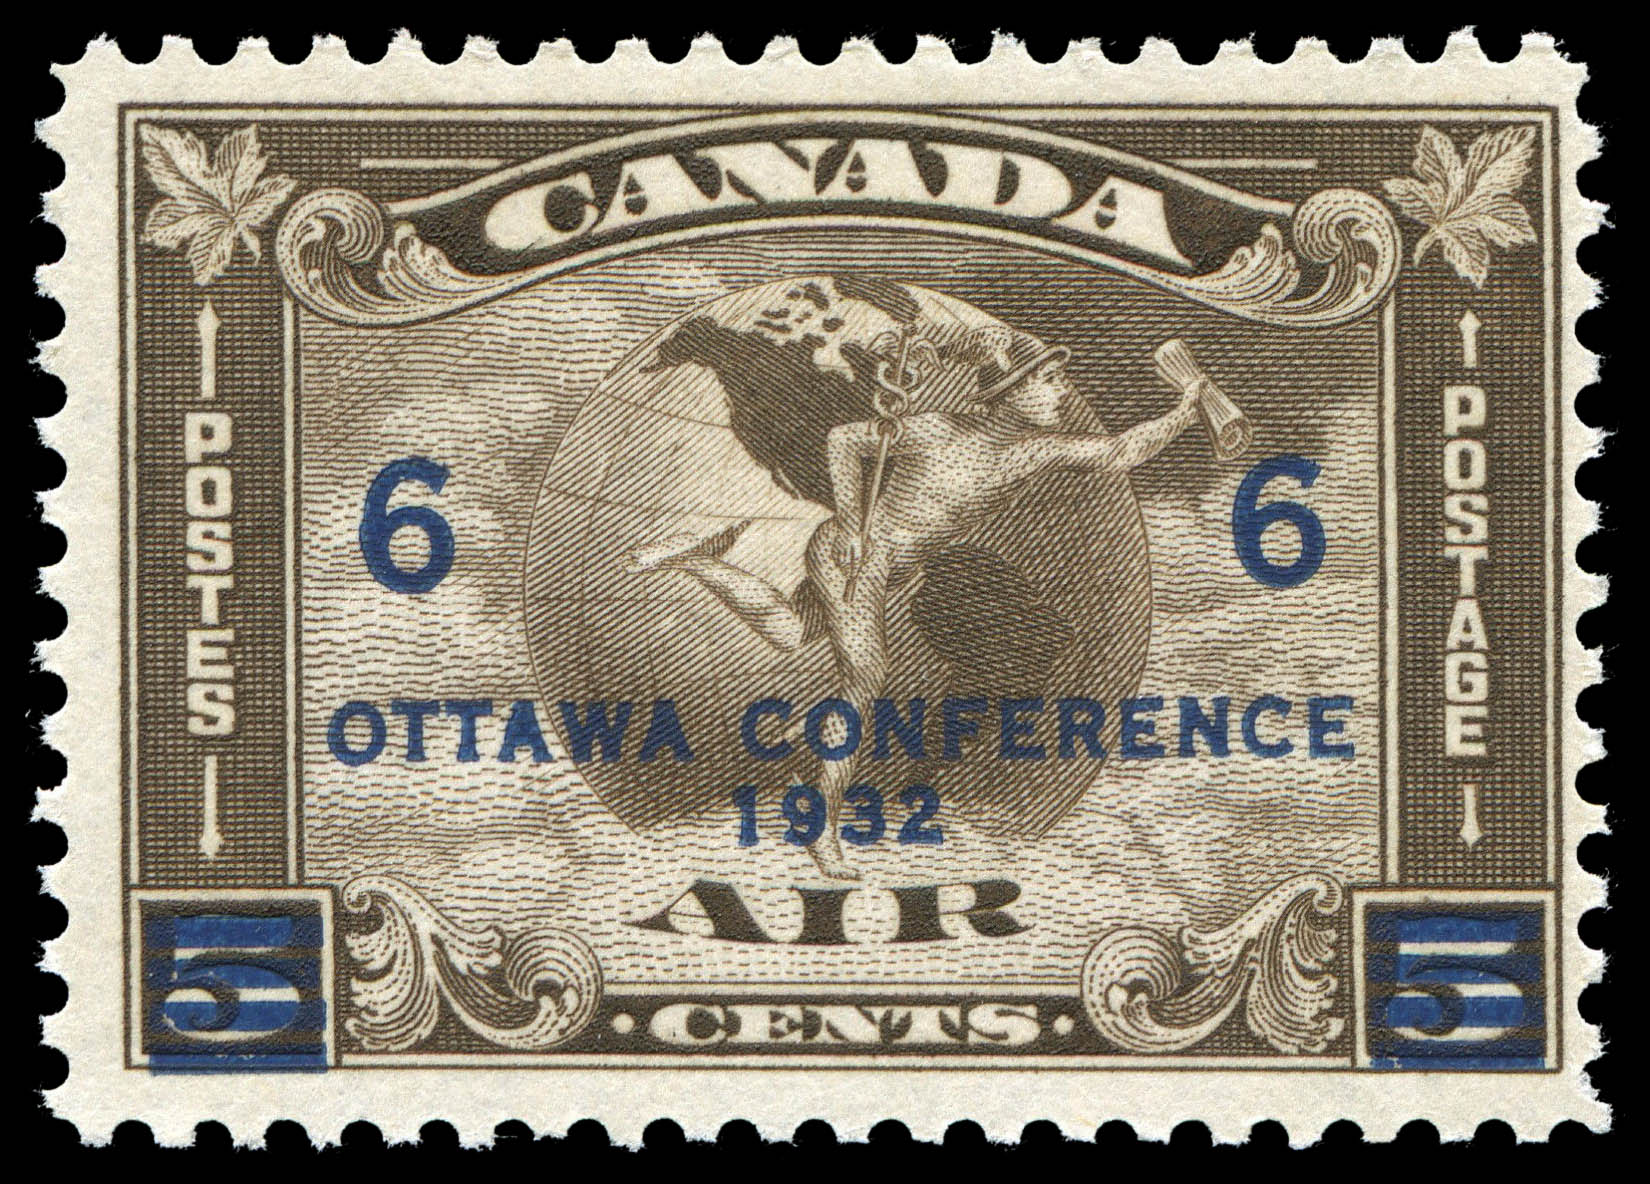 Air, Mercury Canada Postage Stamp | Ottawa, Conference, 1932